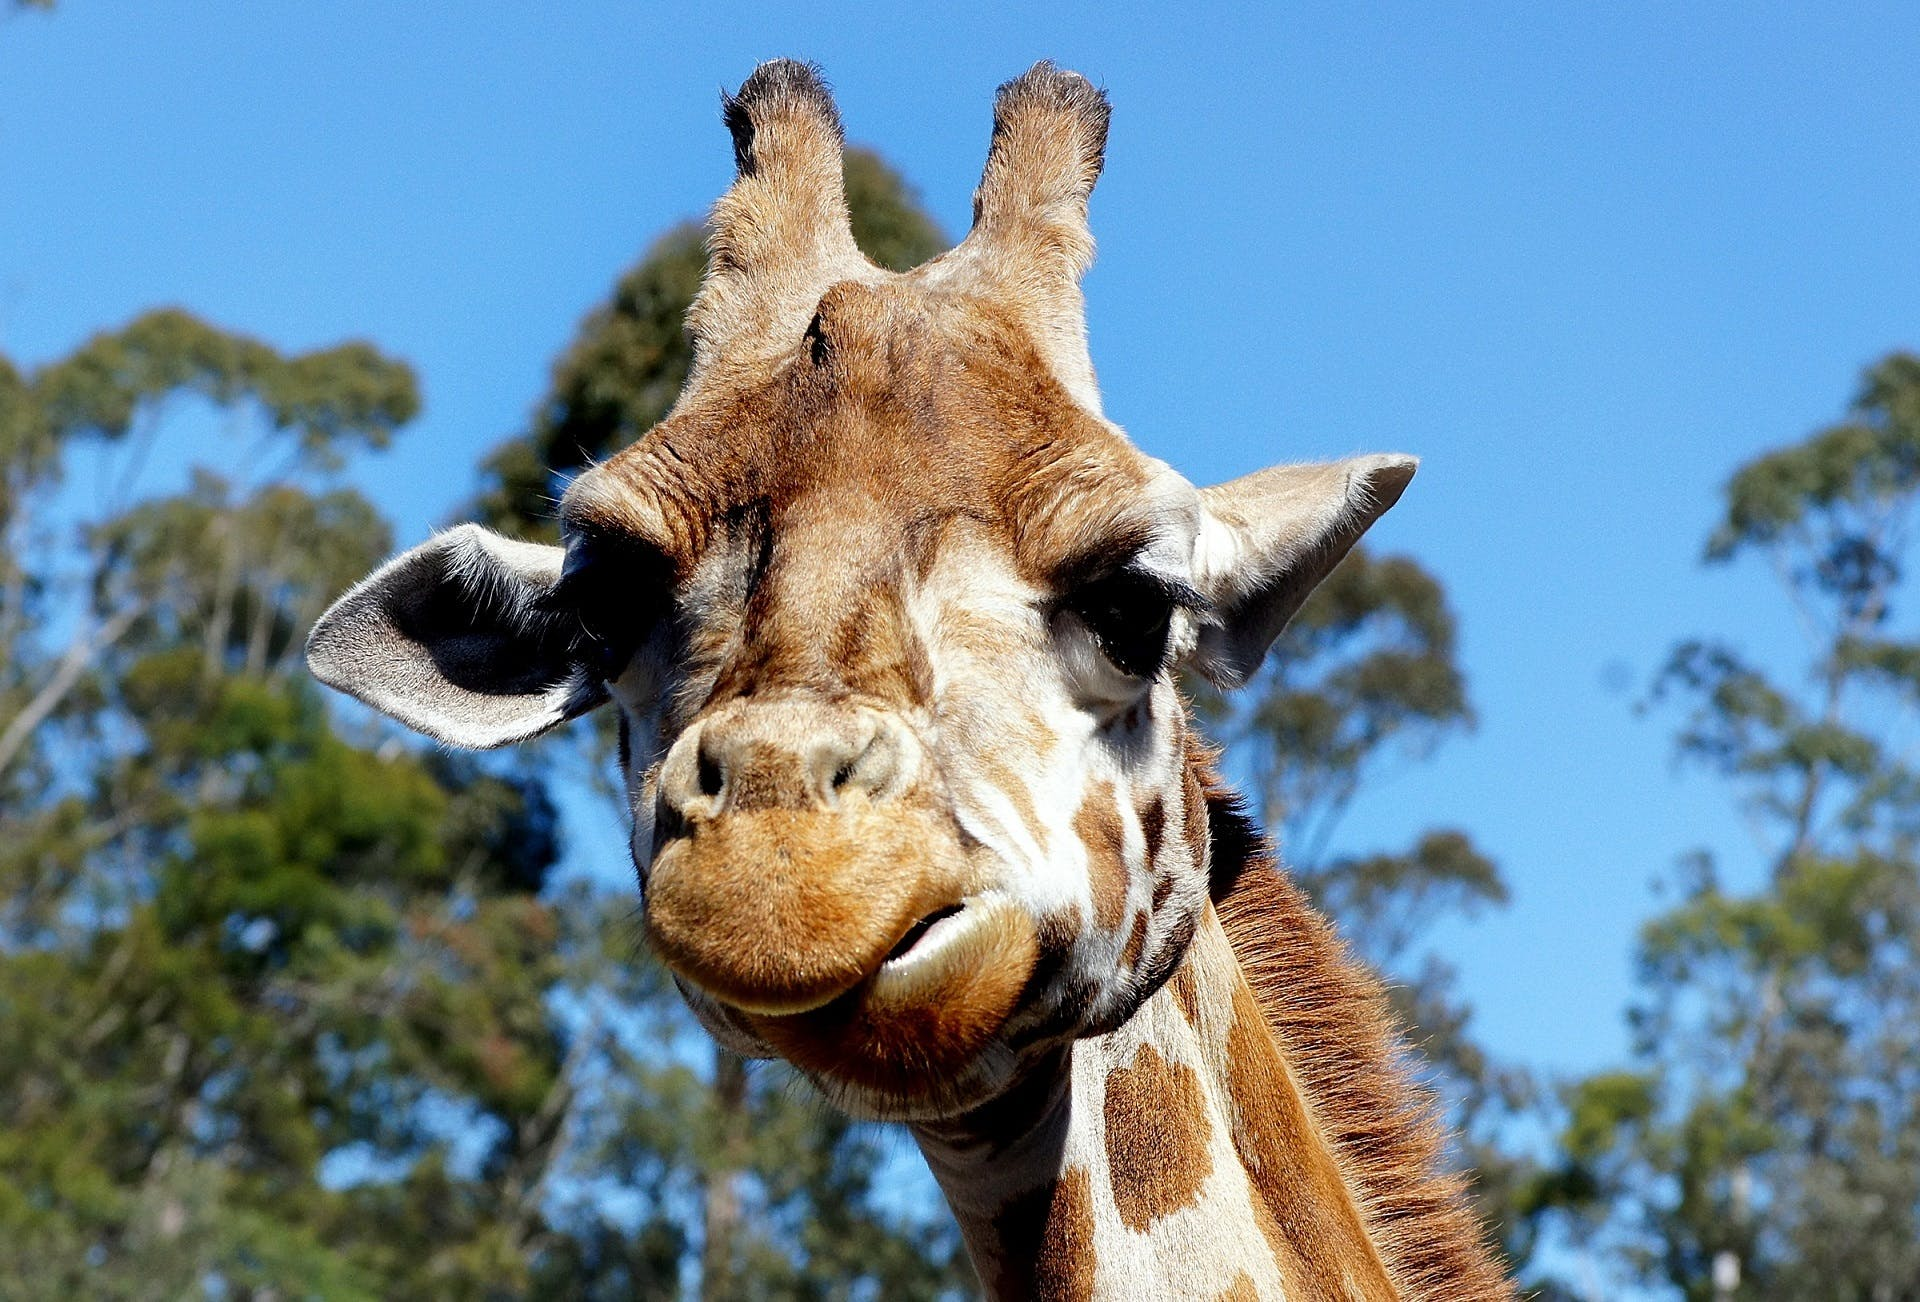 Close-up Portrait of Giraffe Against Trees